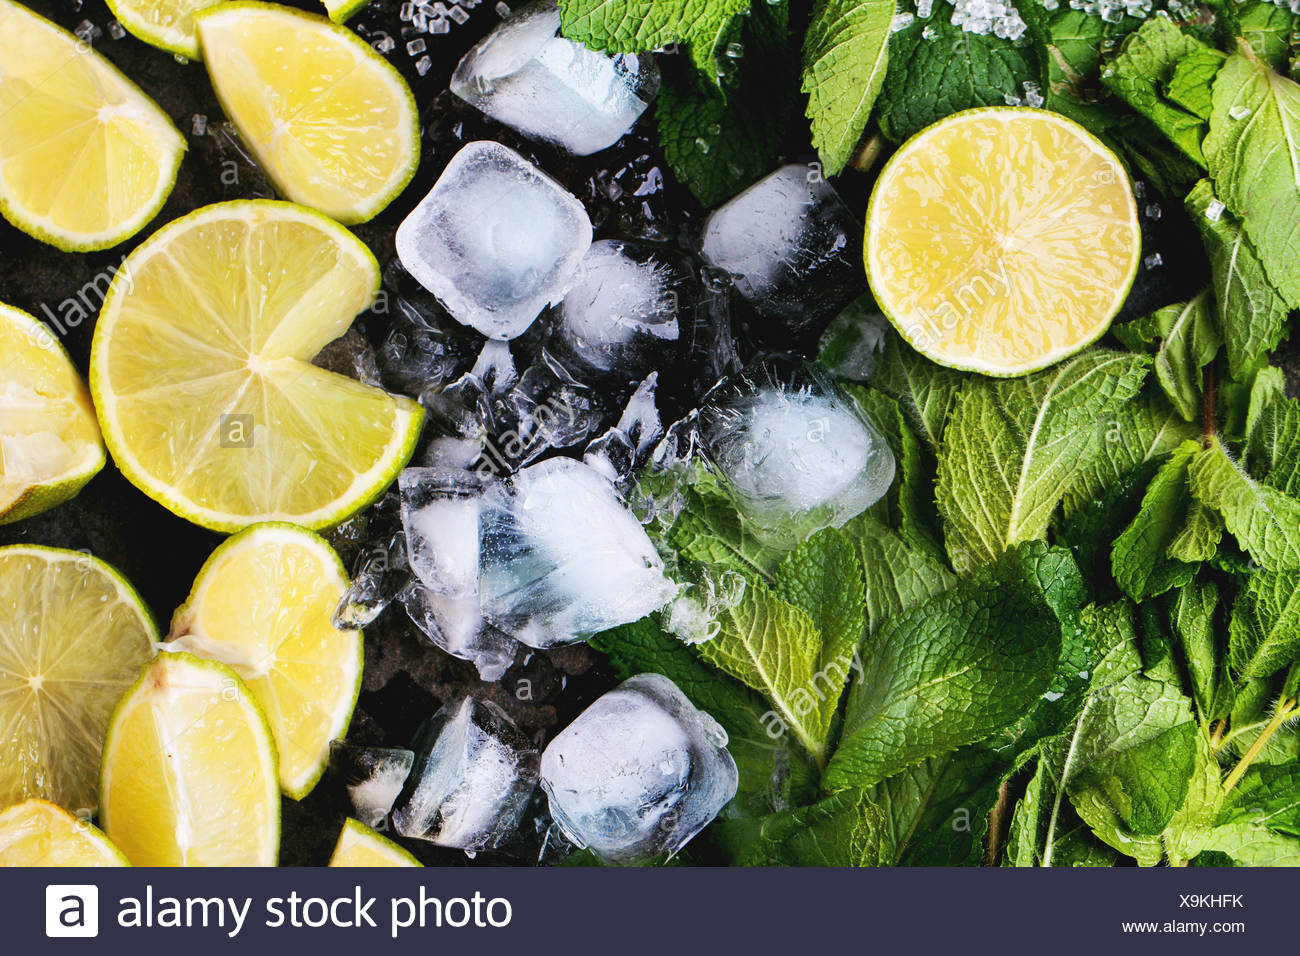 Ingredients for mojito (fresh mint, limes, ice) over black. - Stock Image